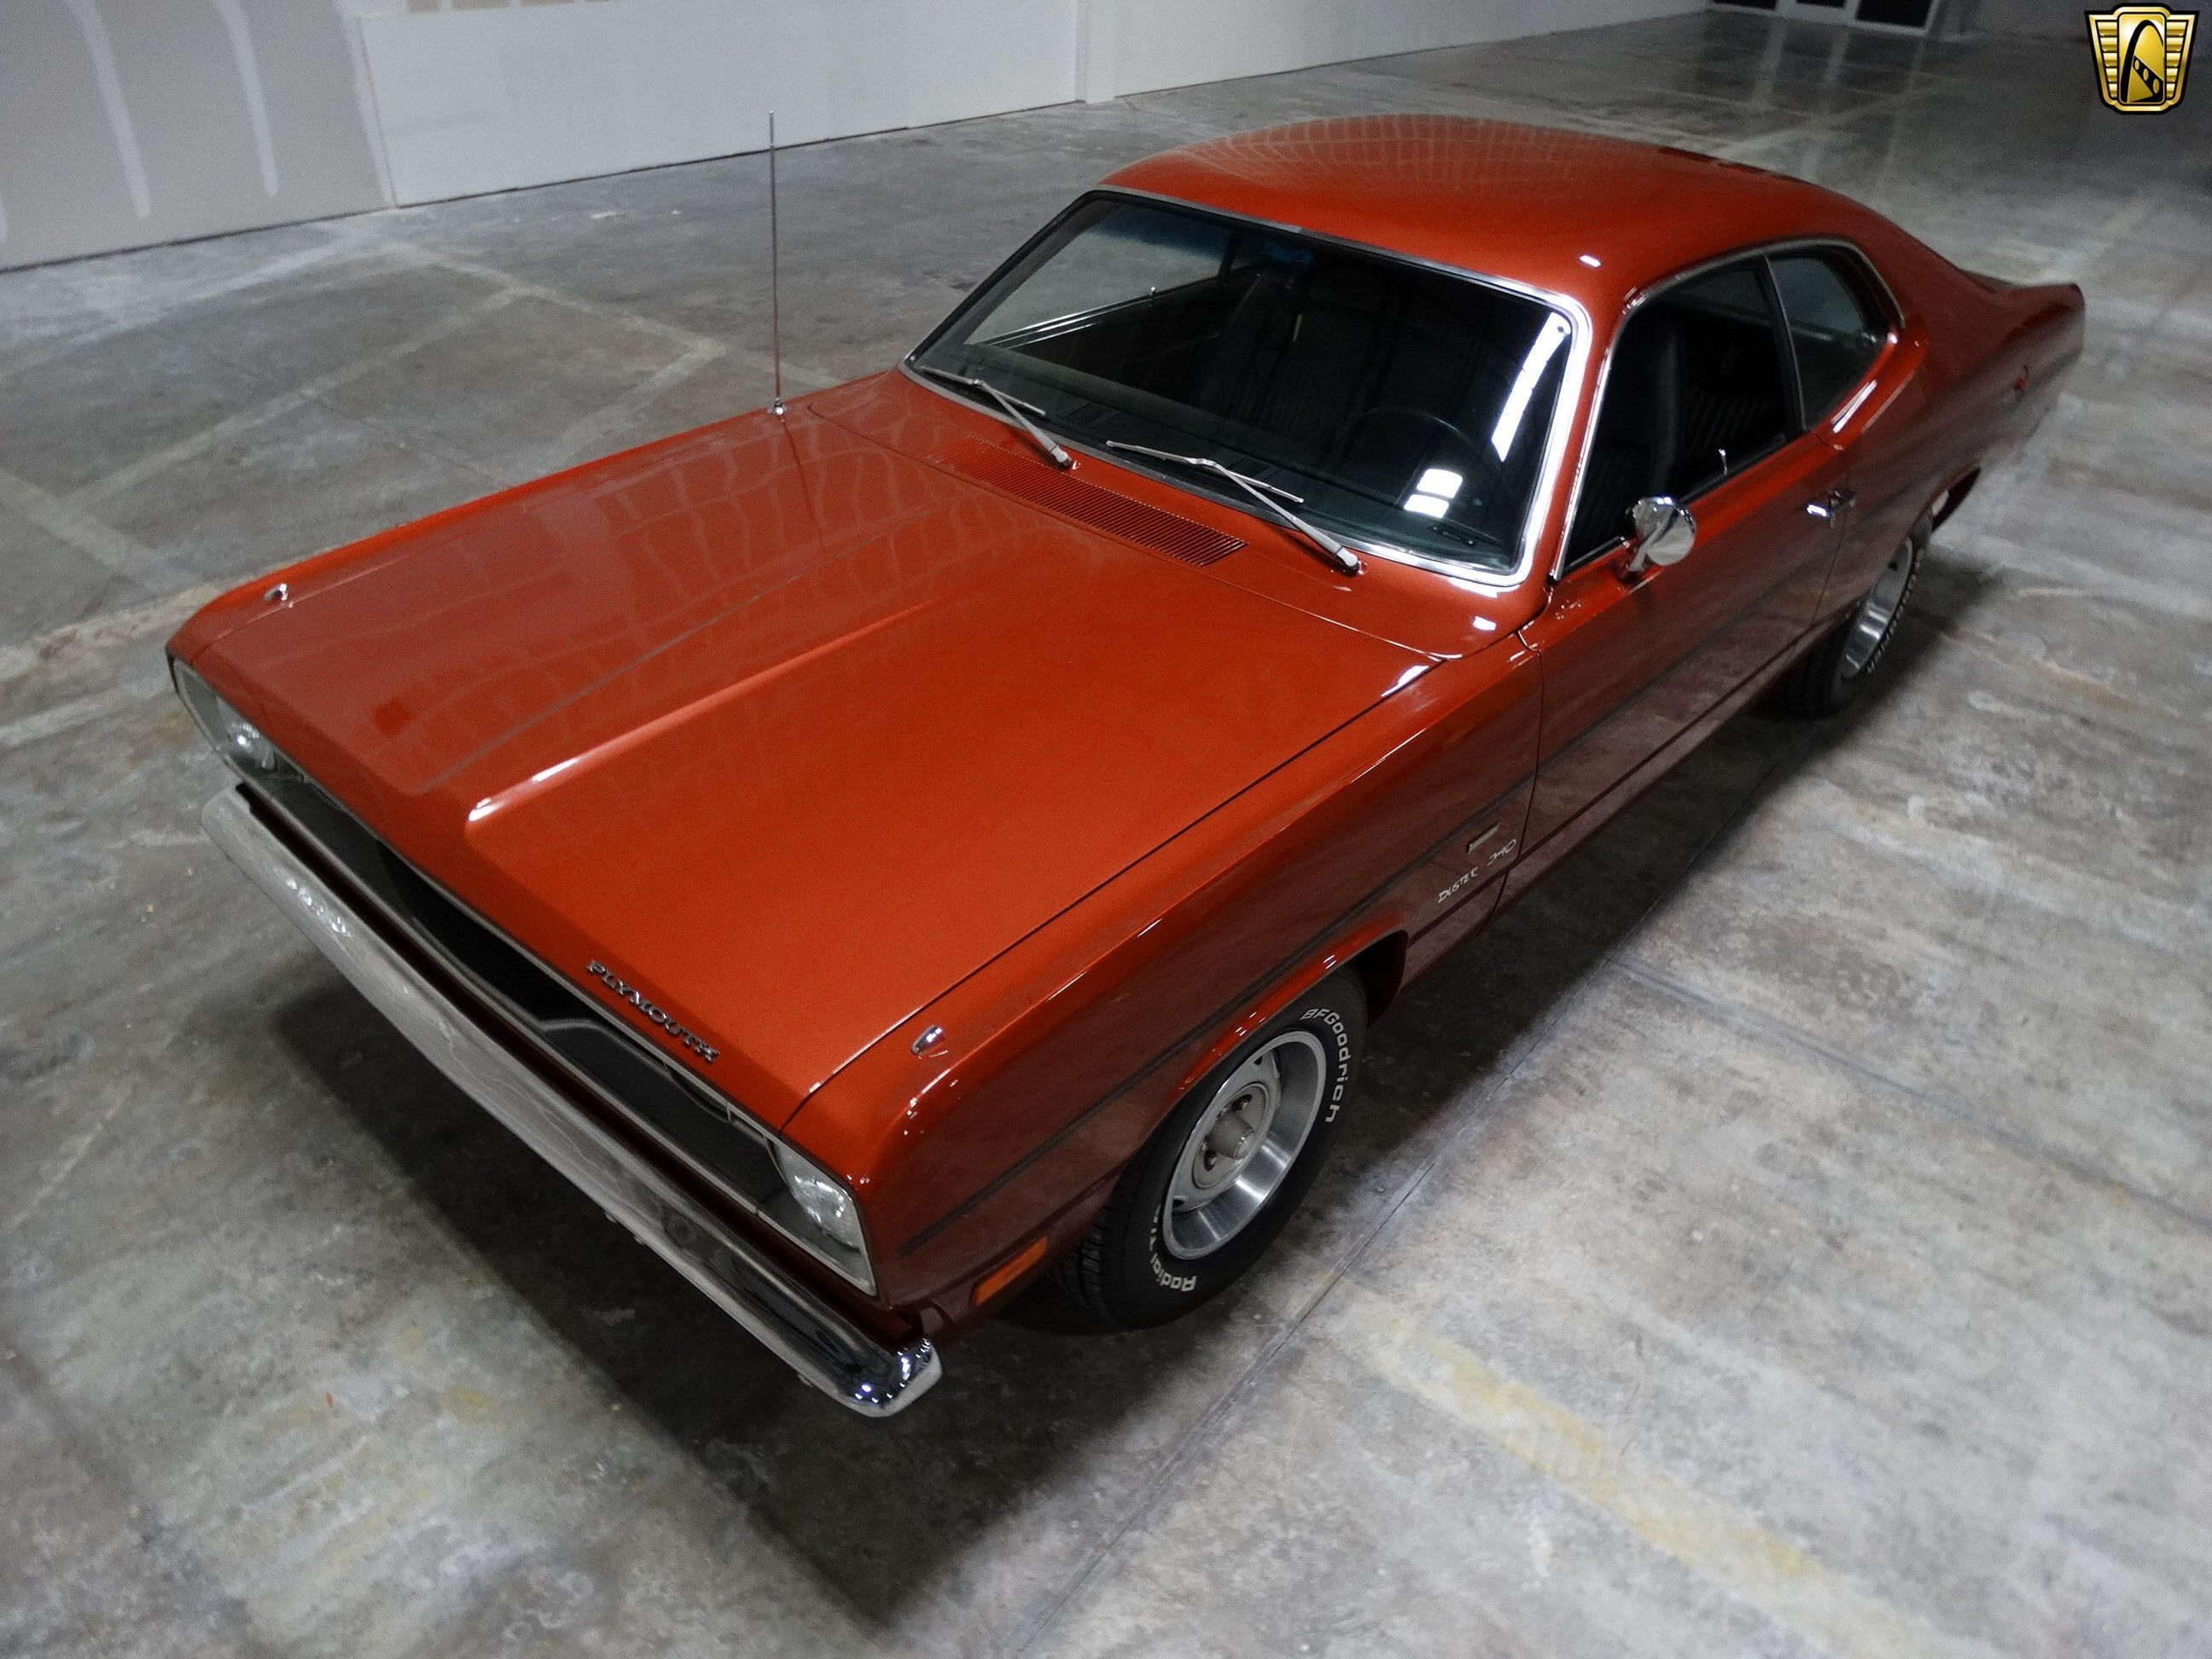 Gateway Classic Cars - classic cars for sale, muscle cars